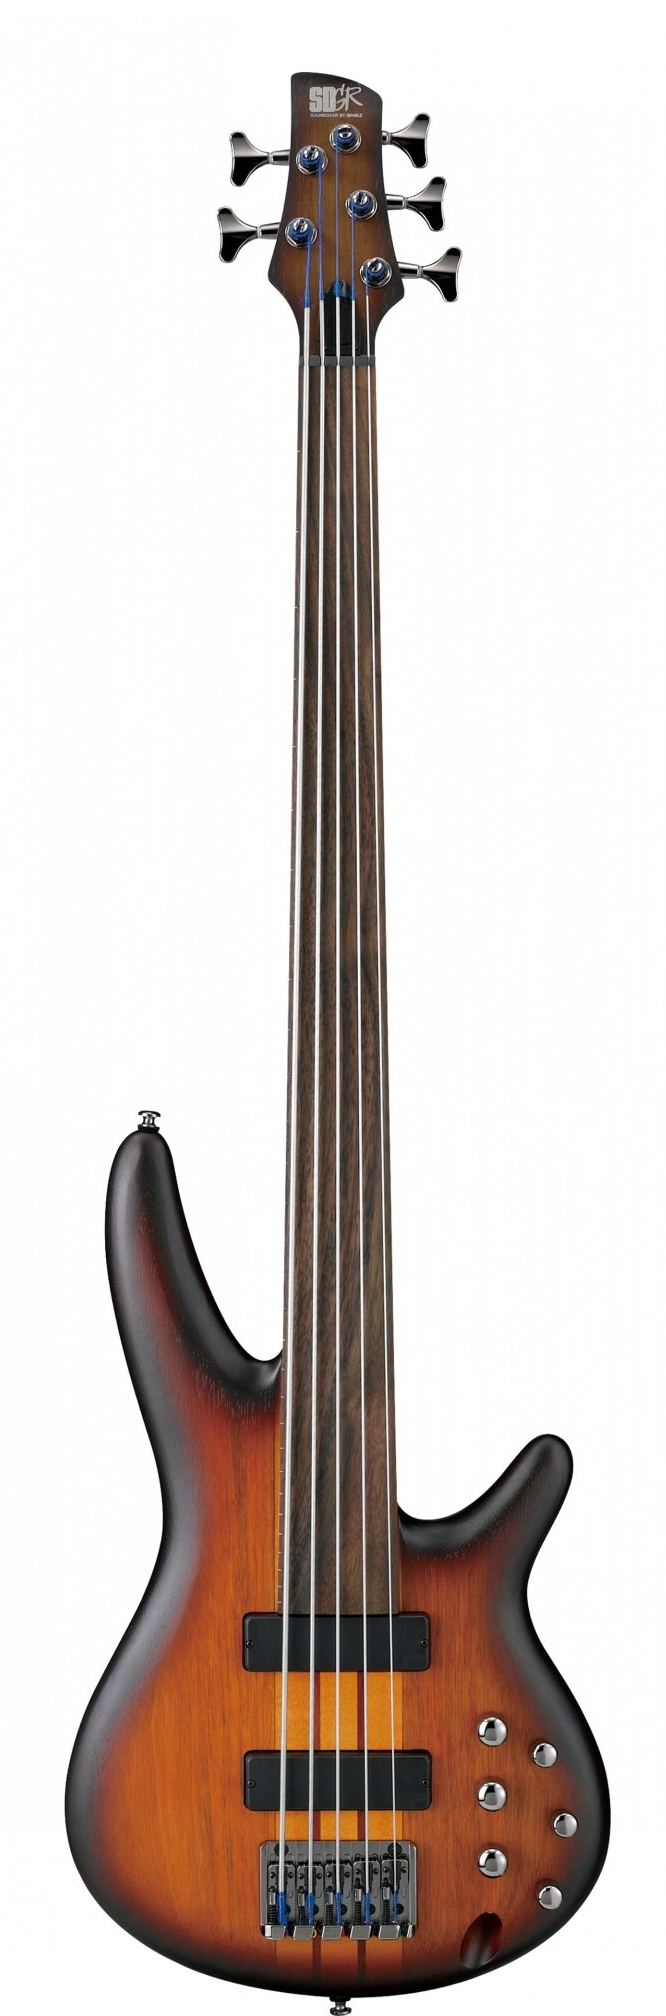 Ibanez SRF705 BBF Fretless Brown Burst Flat 205672